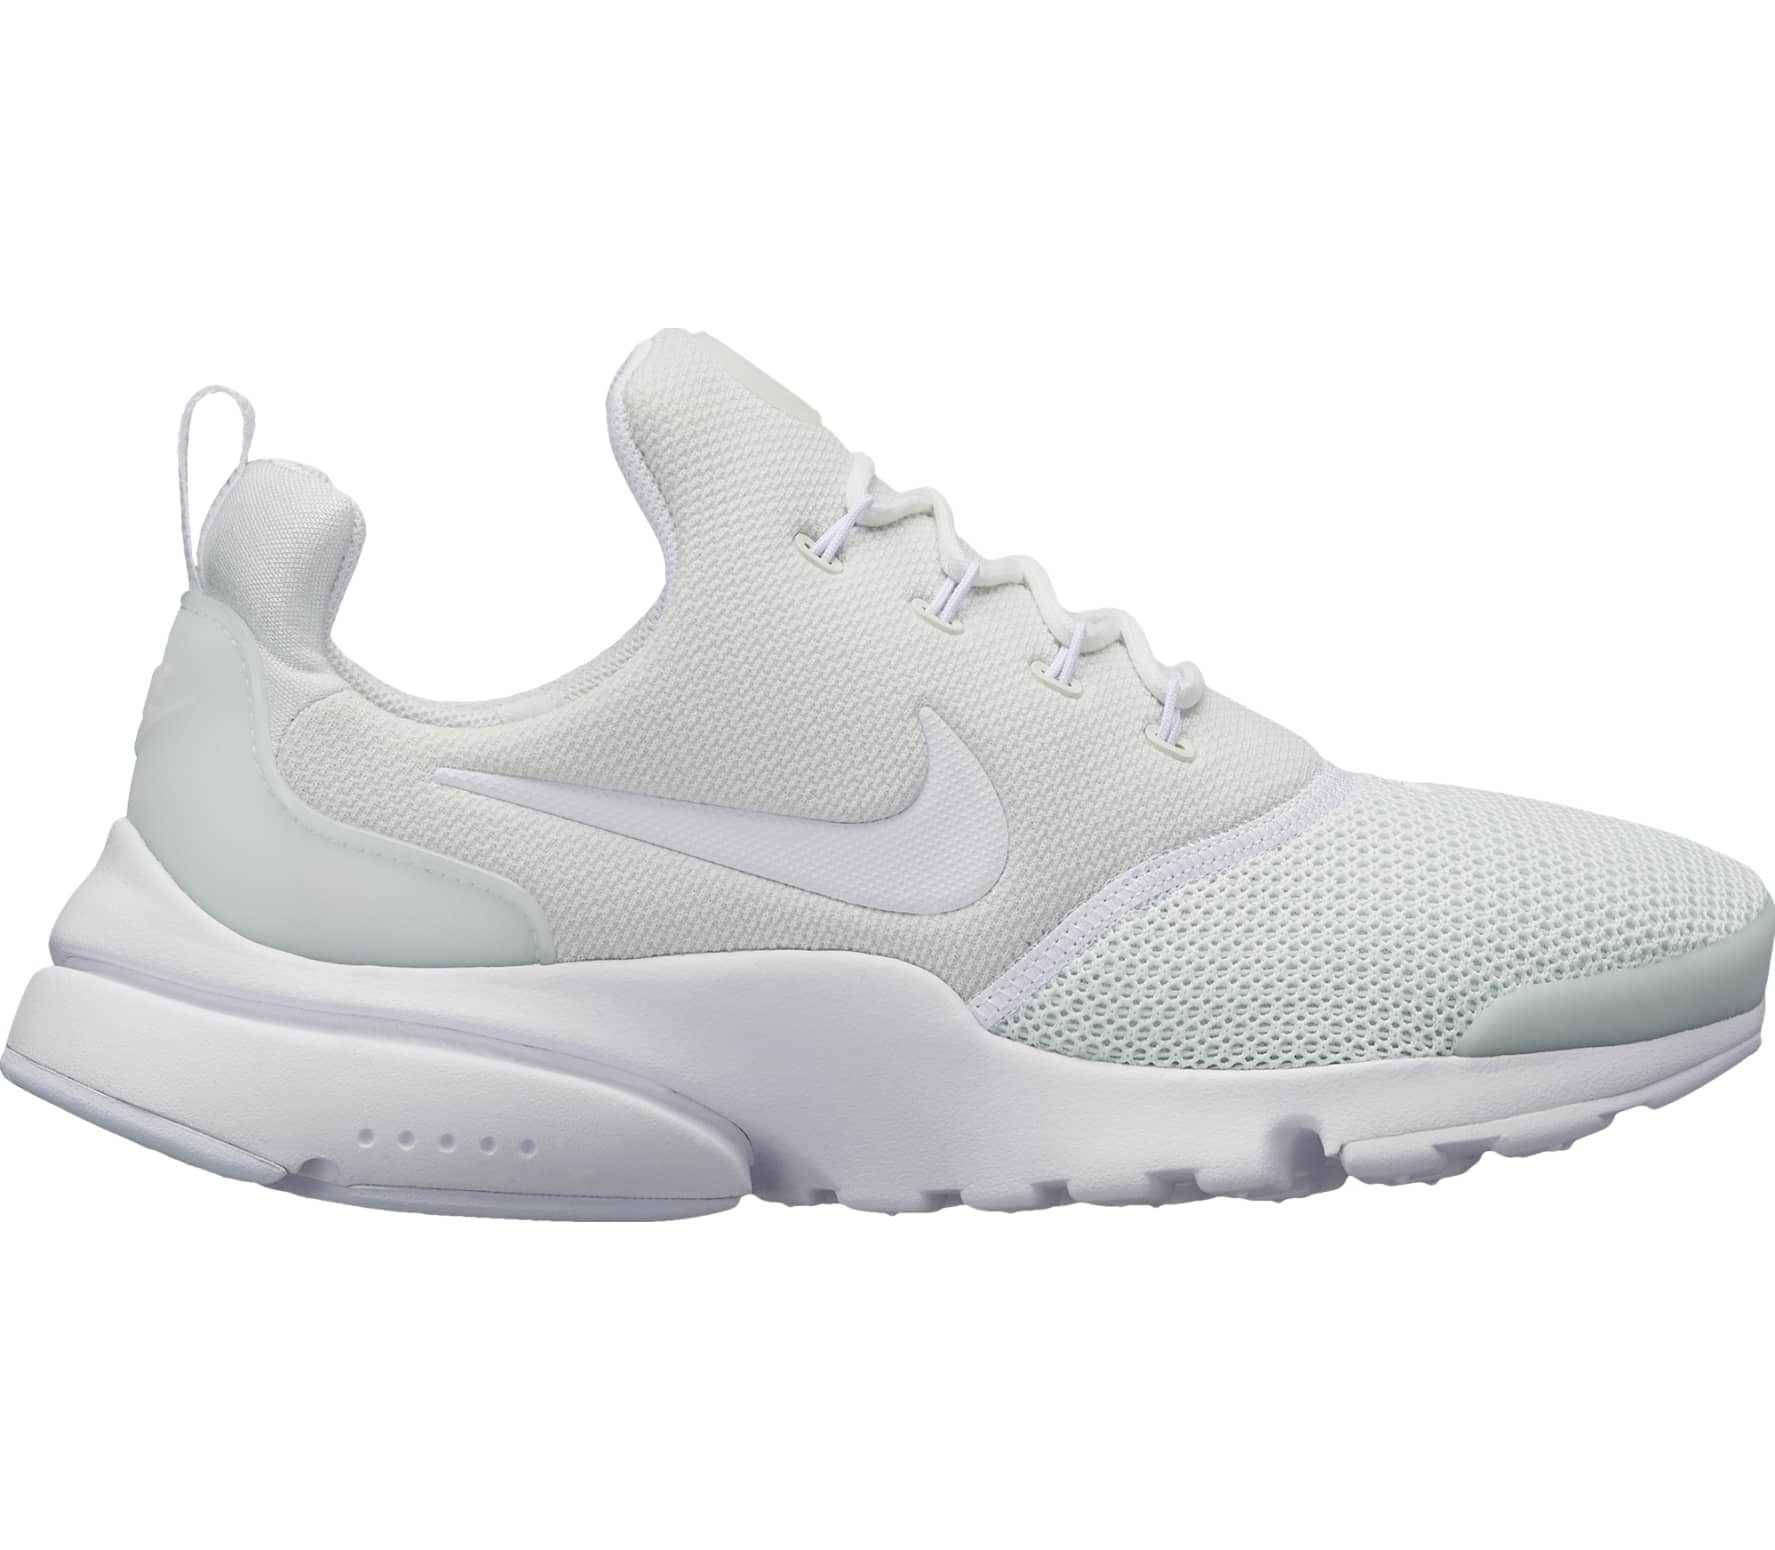 Nike Presto Fly Women white - buy it at the Keller Sports online shop